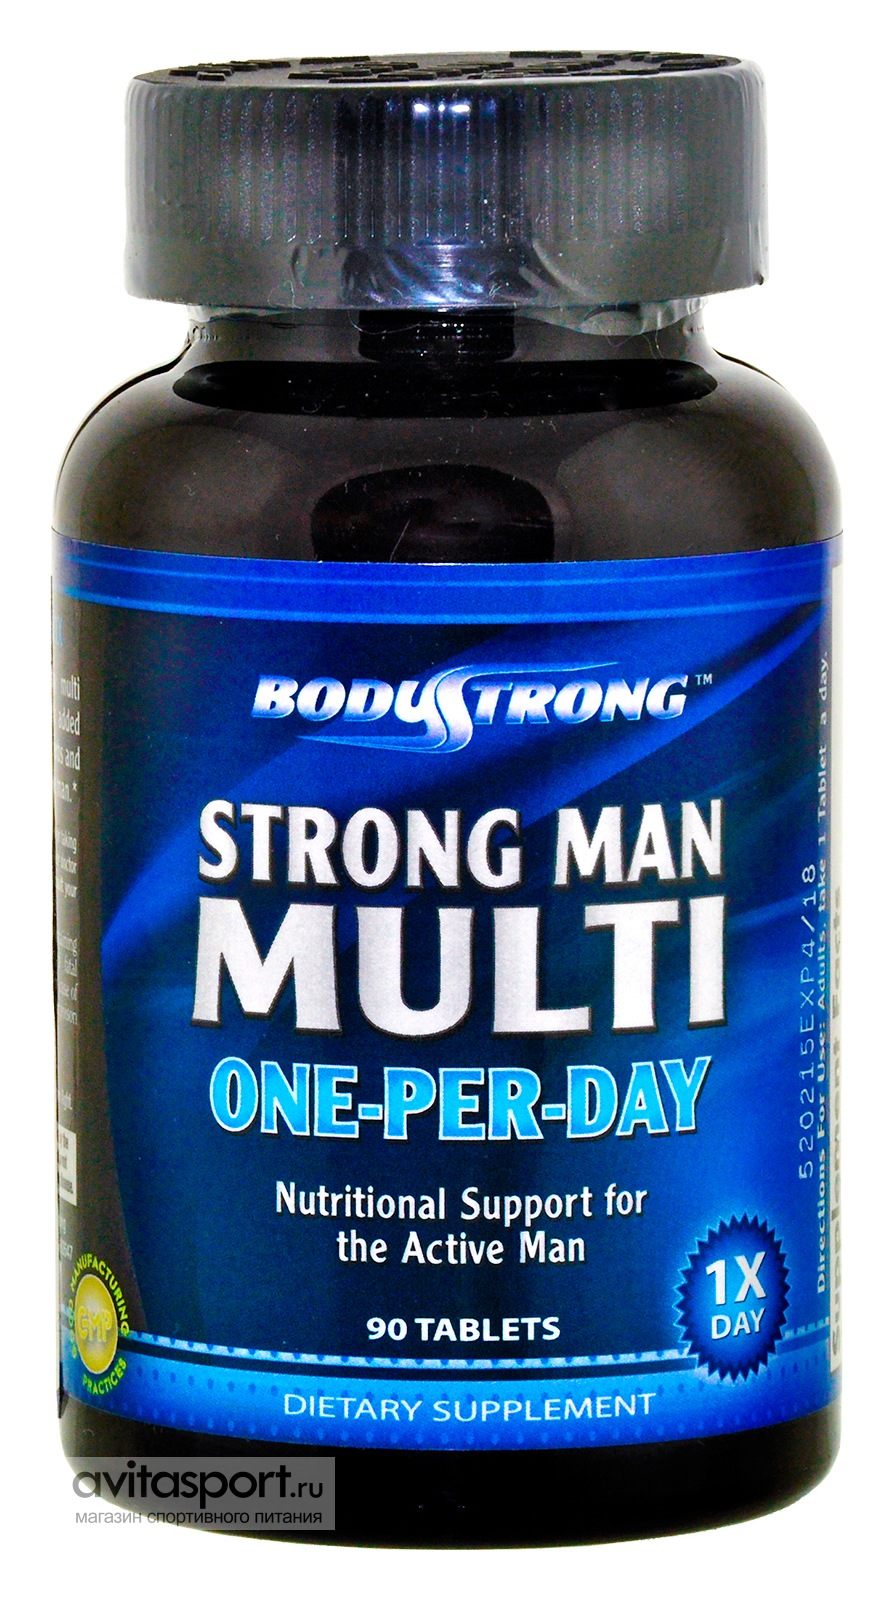 BodyStrong Strong Man Multi One-Per-Day 90 таблеток